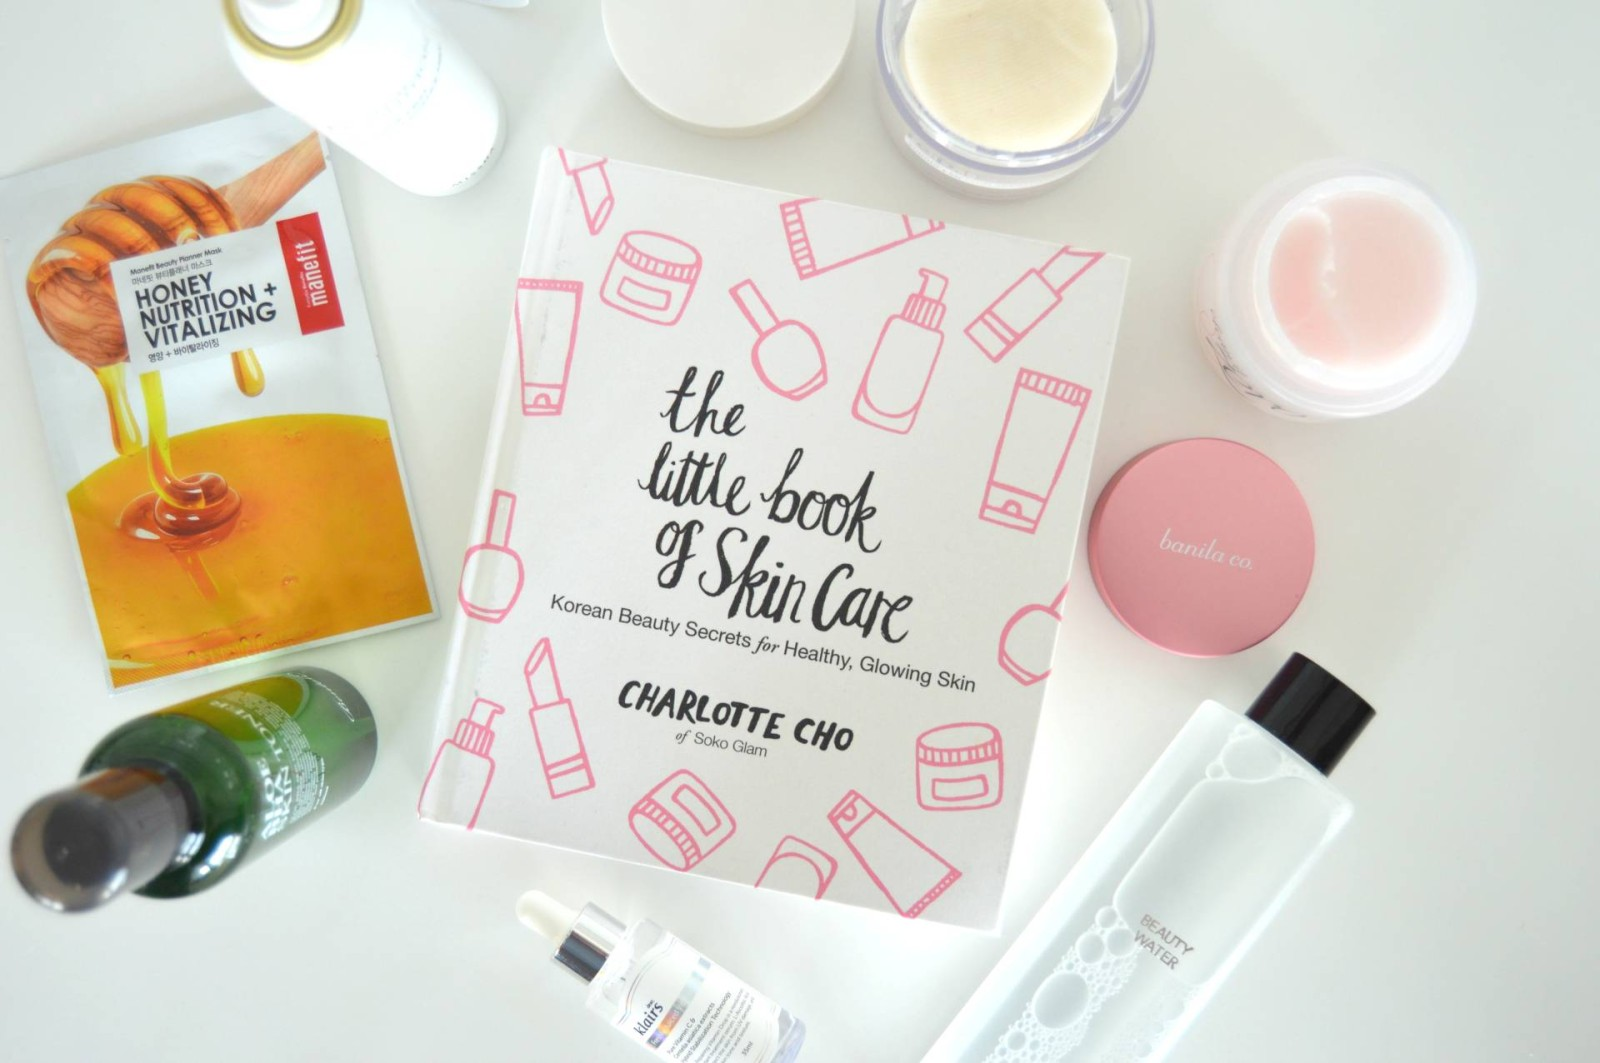 'The Little Book of Skincare' + Soko Glam = #kbeauty everything